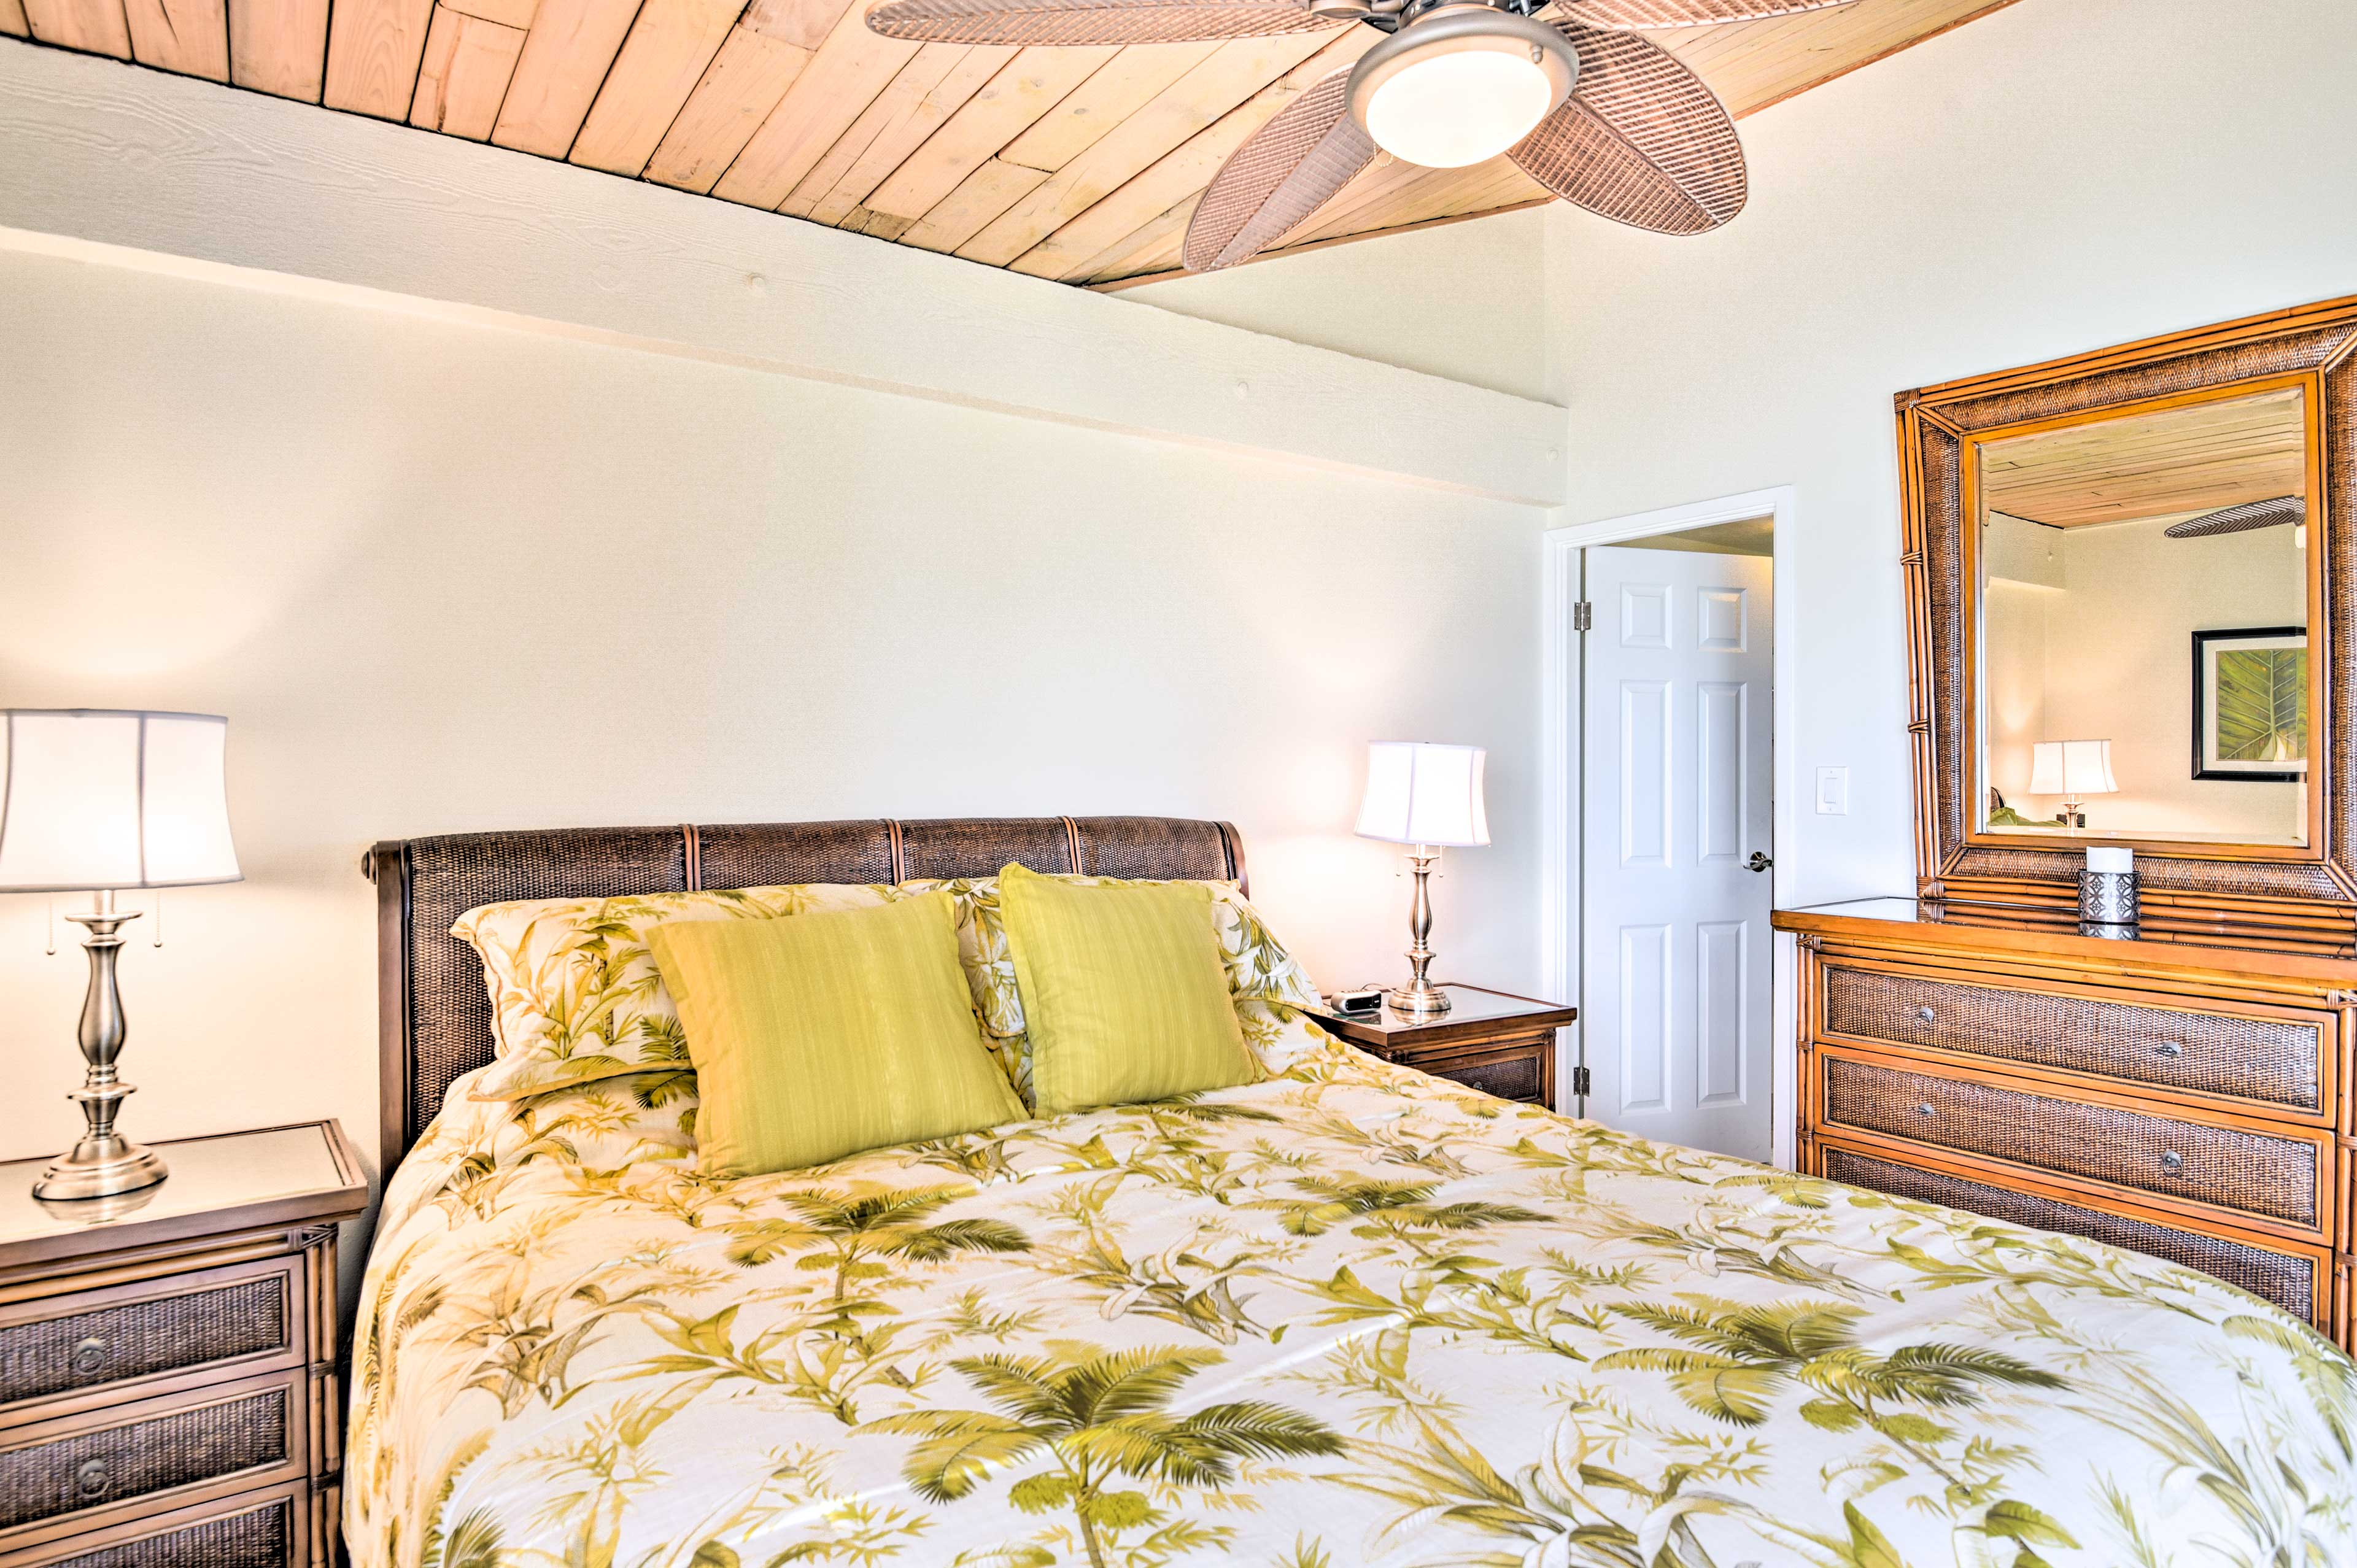 1, 2, 3...and you'll fall asleep quickly in this comfy king-sized bed.